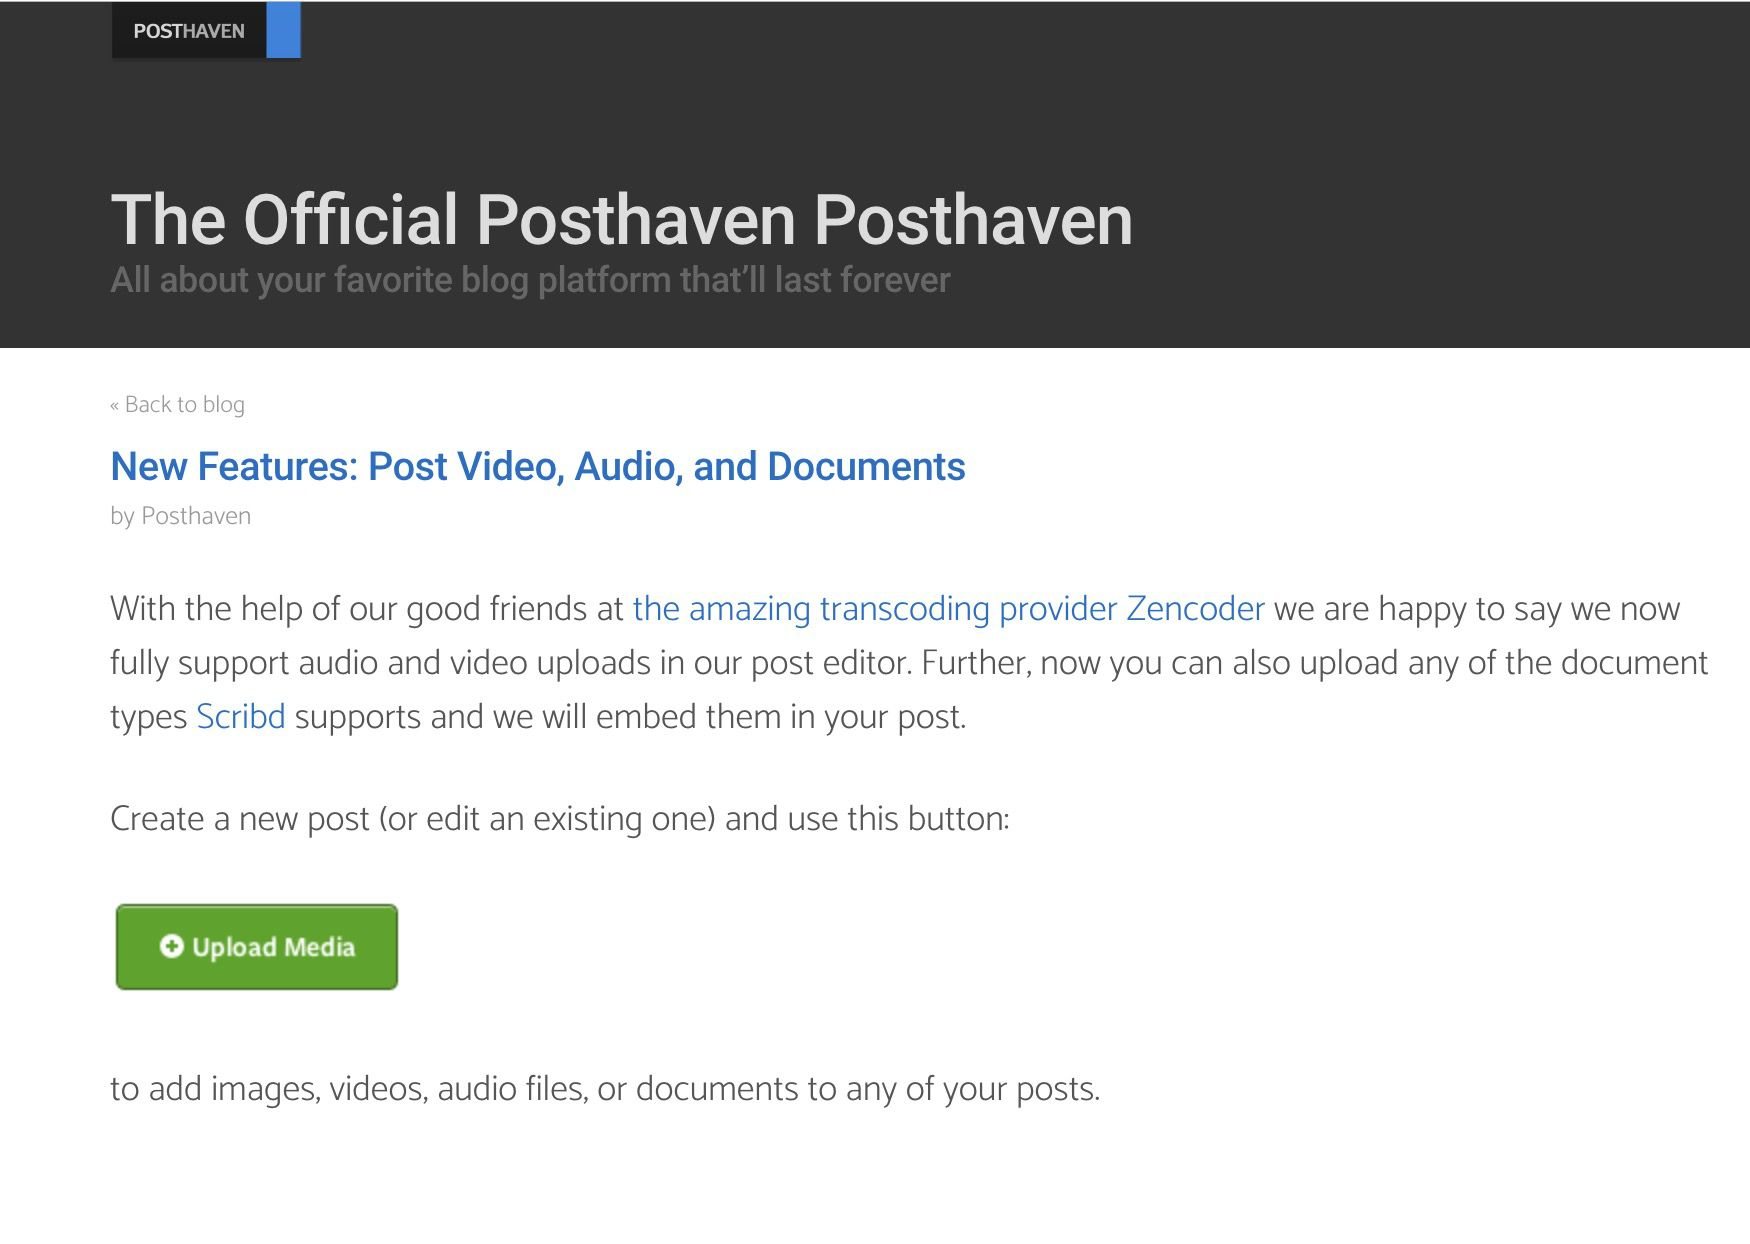 Posthaven announcement about Video, Audio, and Document support